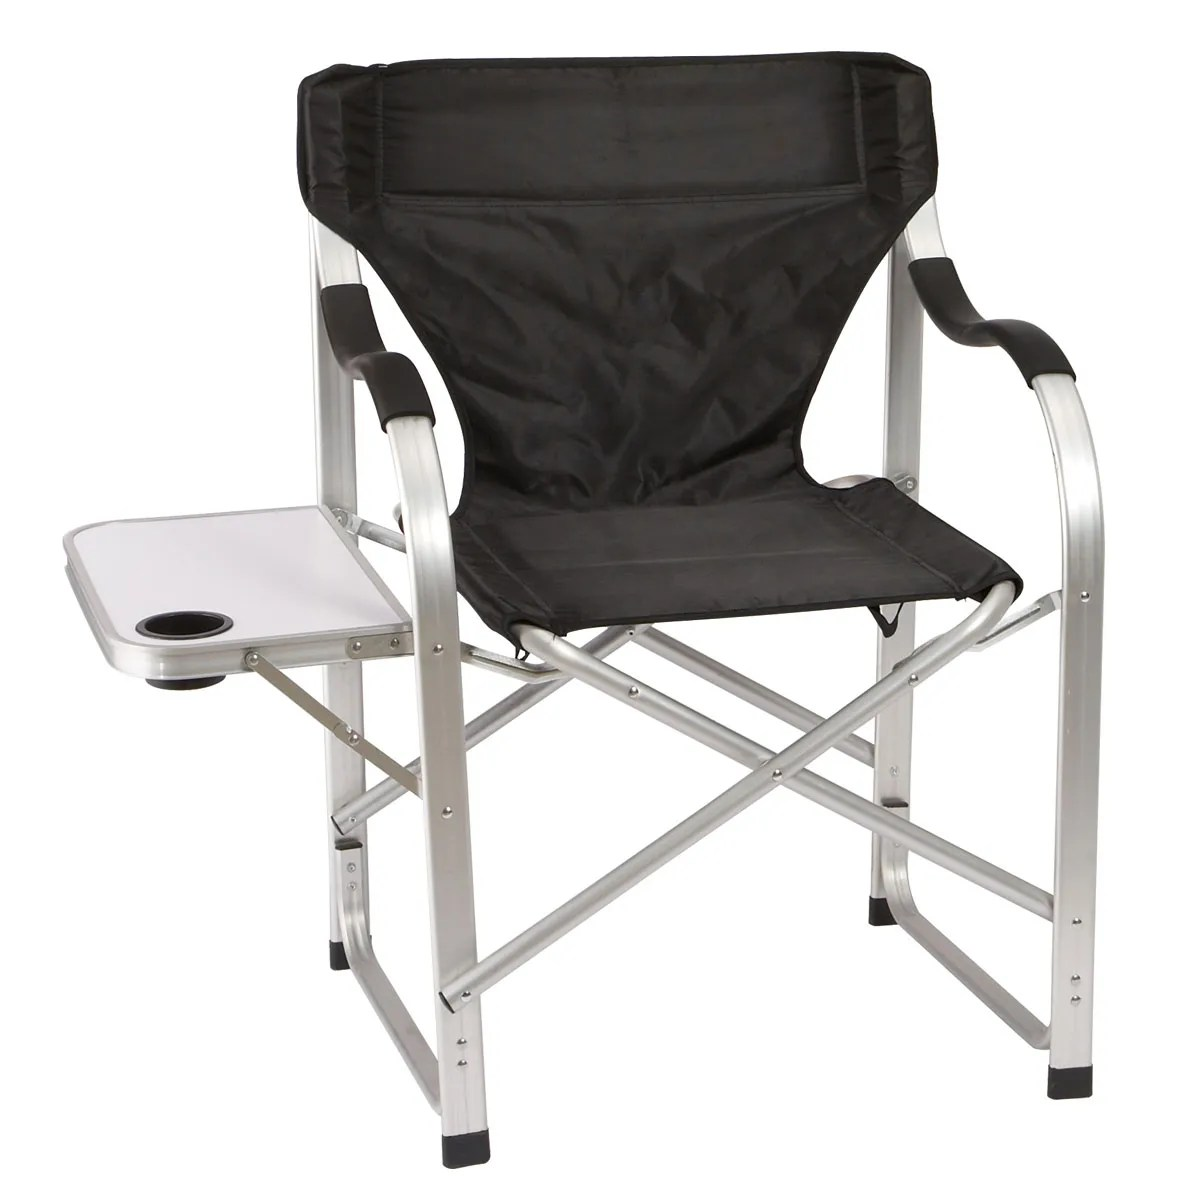 heavy duty folding chairs outdoor pottery barn wooden dining collapsible lawn chair black from sportys preferred show all